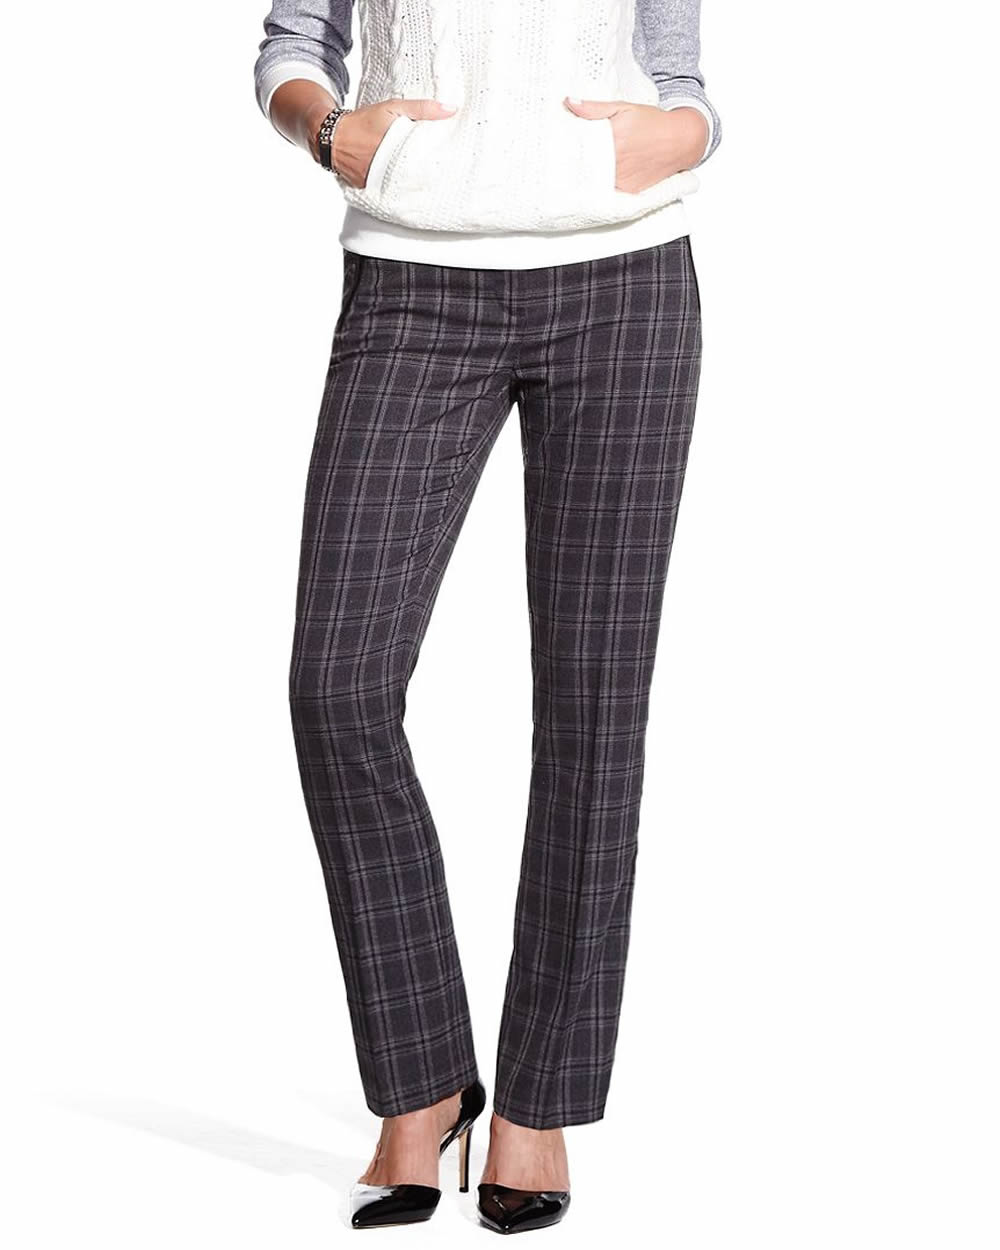 Perfect WOMENS PESERICO DRESS PANTS SIZE 42 WOOL NYLON BLUE GRAY PLAID MADE IN